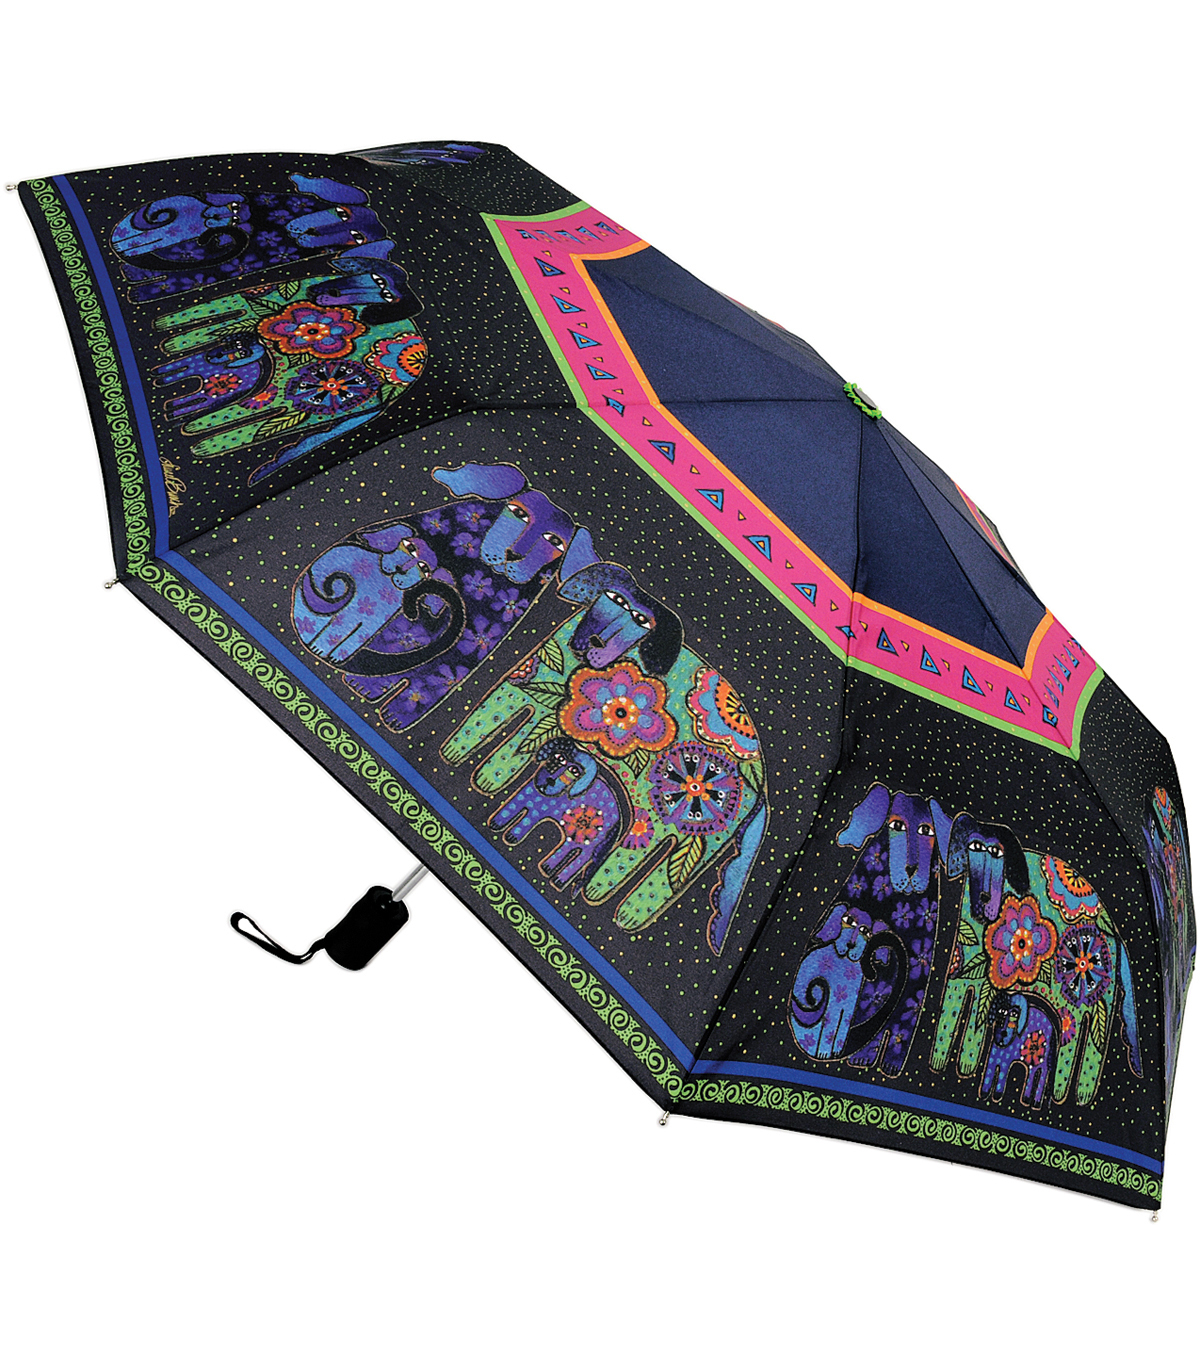 Laurel Burch Compact Umbrella-Dog & Doggies